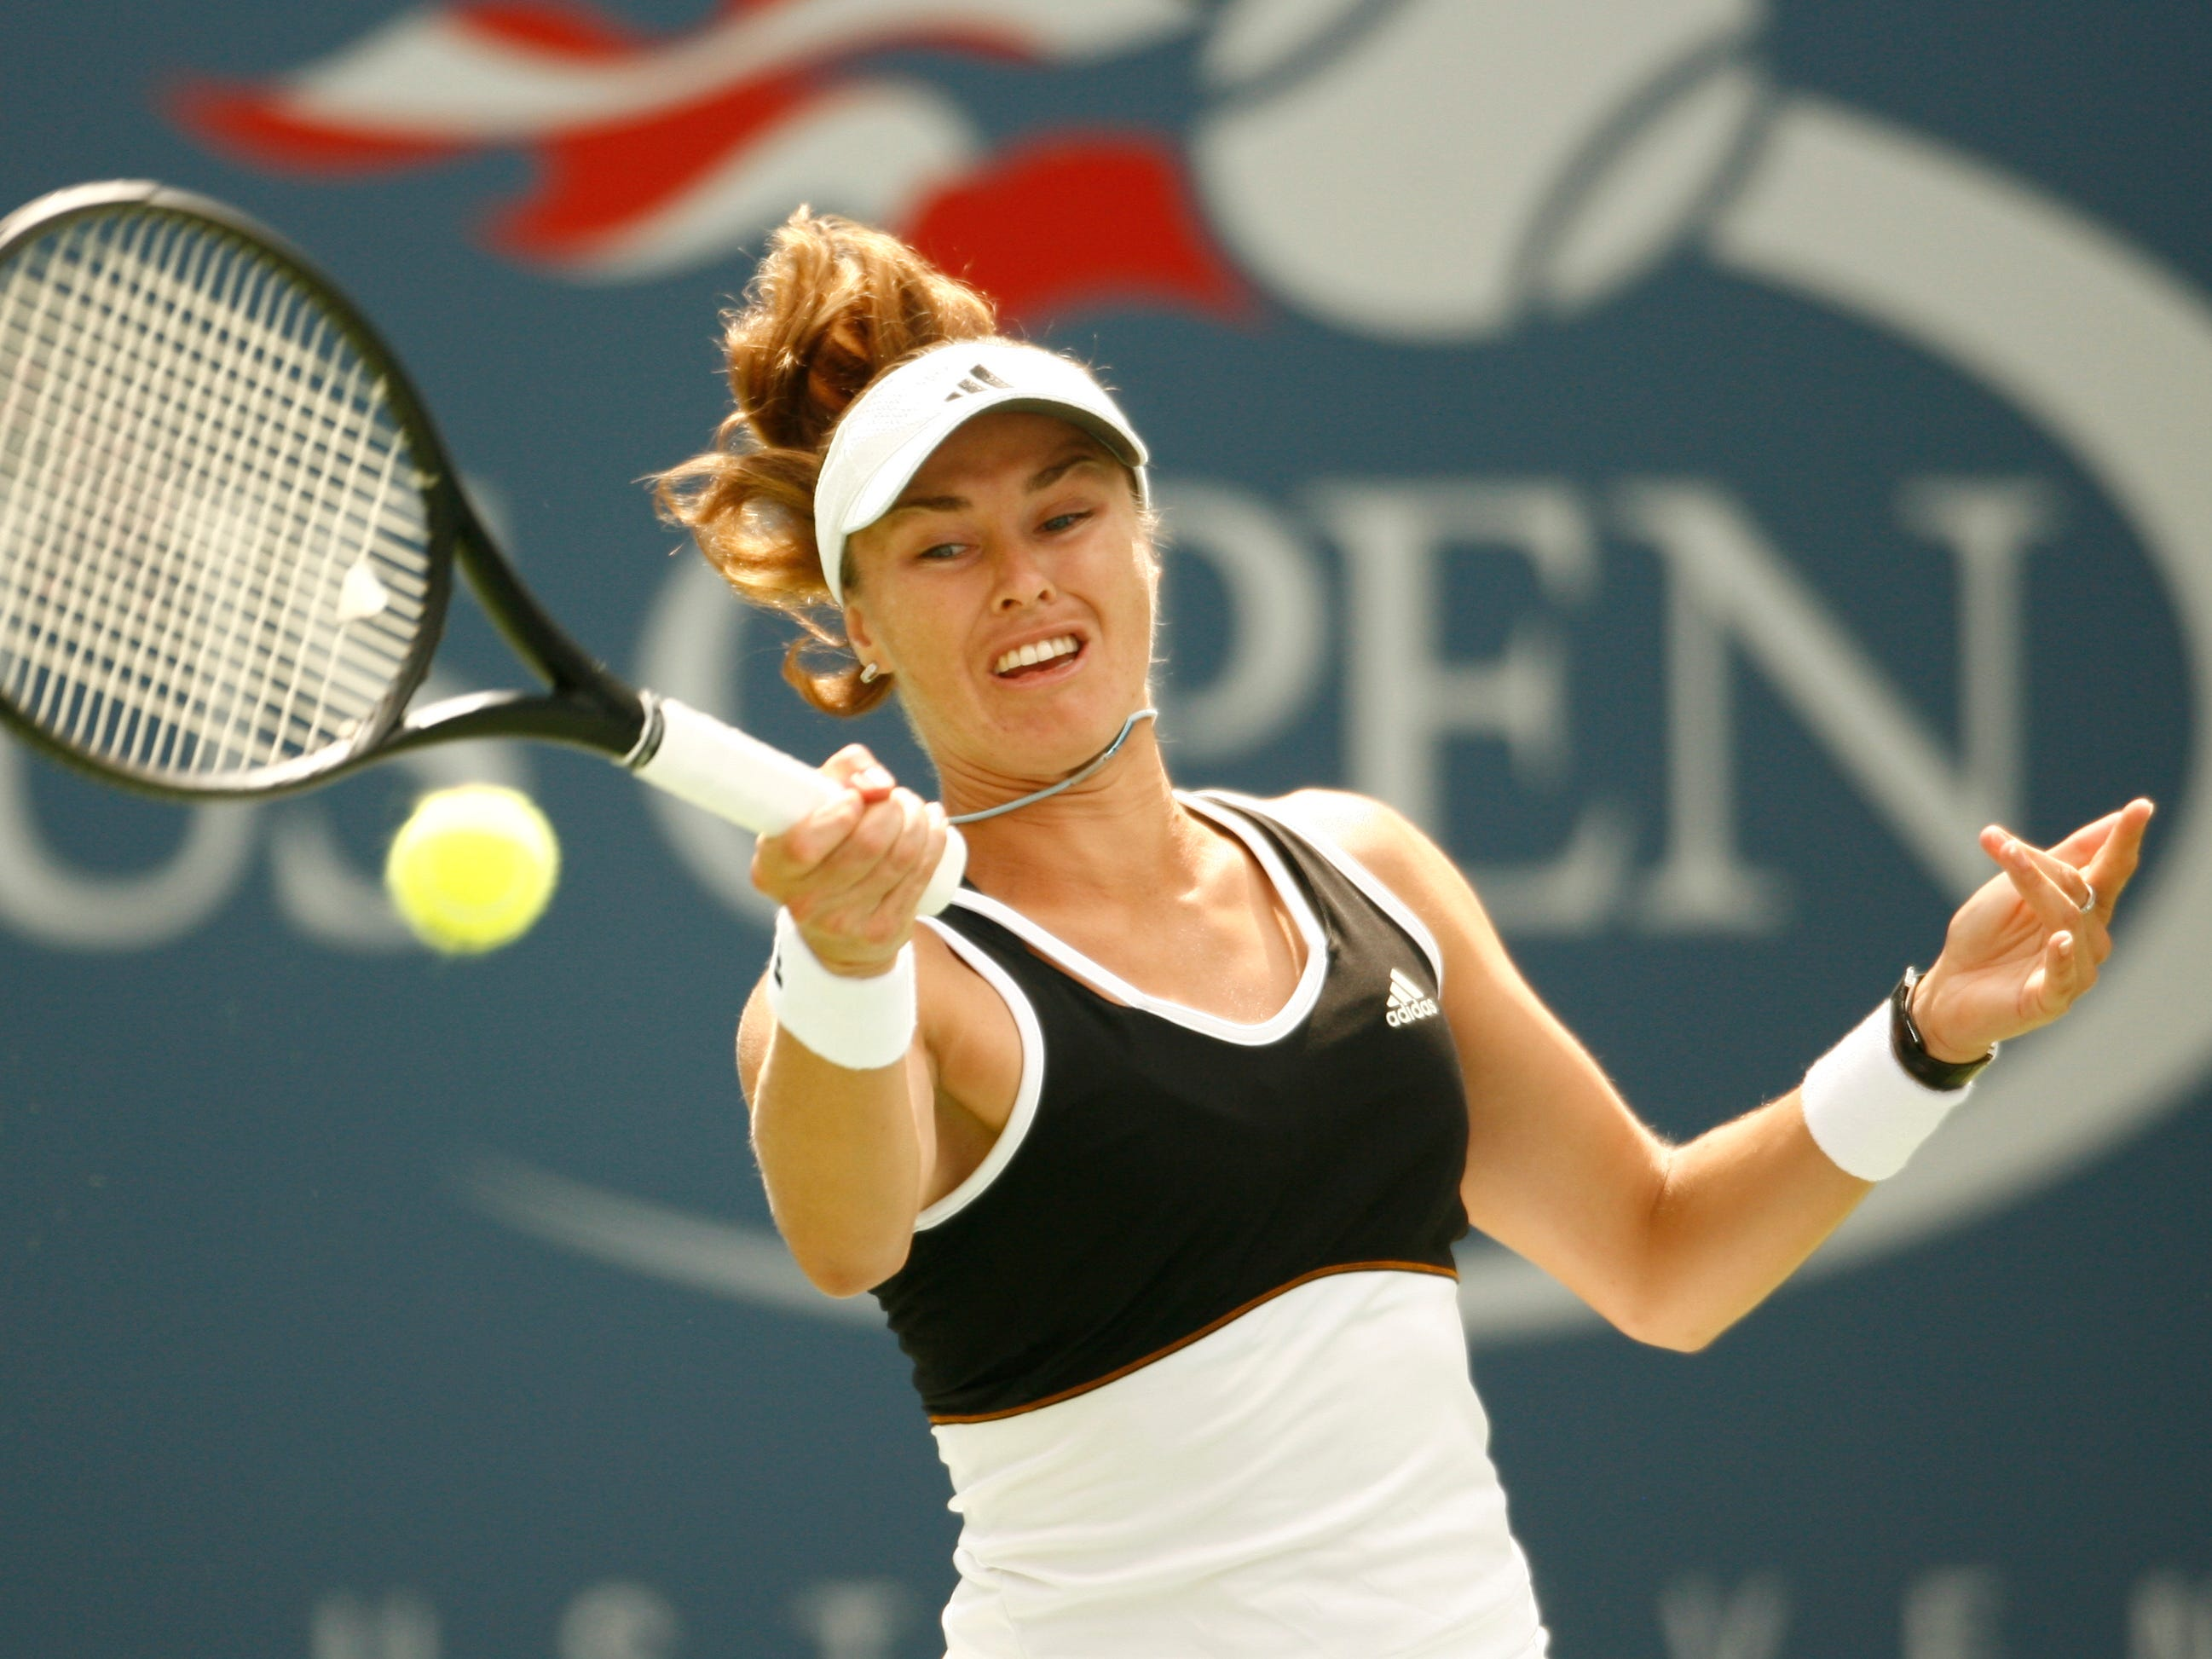 Martina Hingis (6-7). Another of those fierce, occasionally controversial, rivals. Hingis was inducted into the Hall of Fame in 2013. Their series was back and forth, but Serena won their only major final ... the 1999 U.S. Open, her first Grand Slam title.